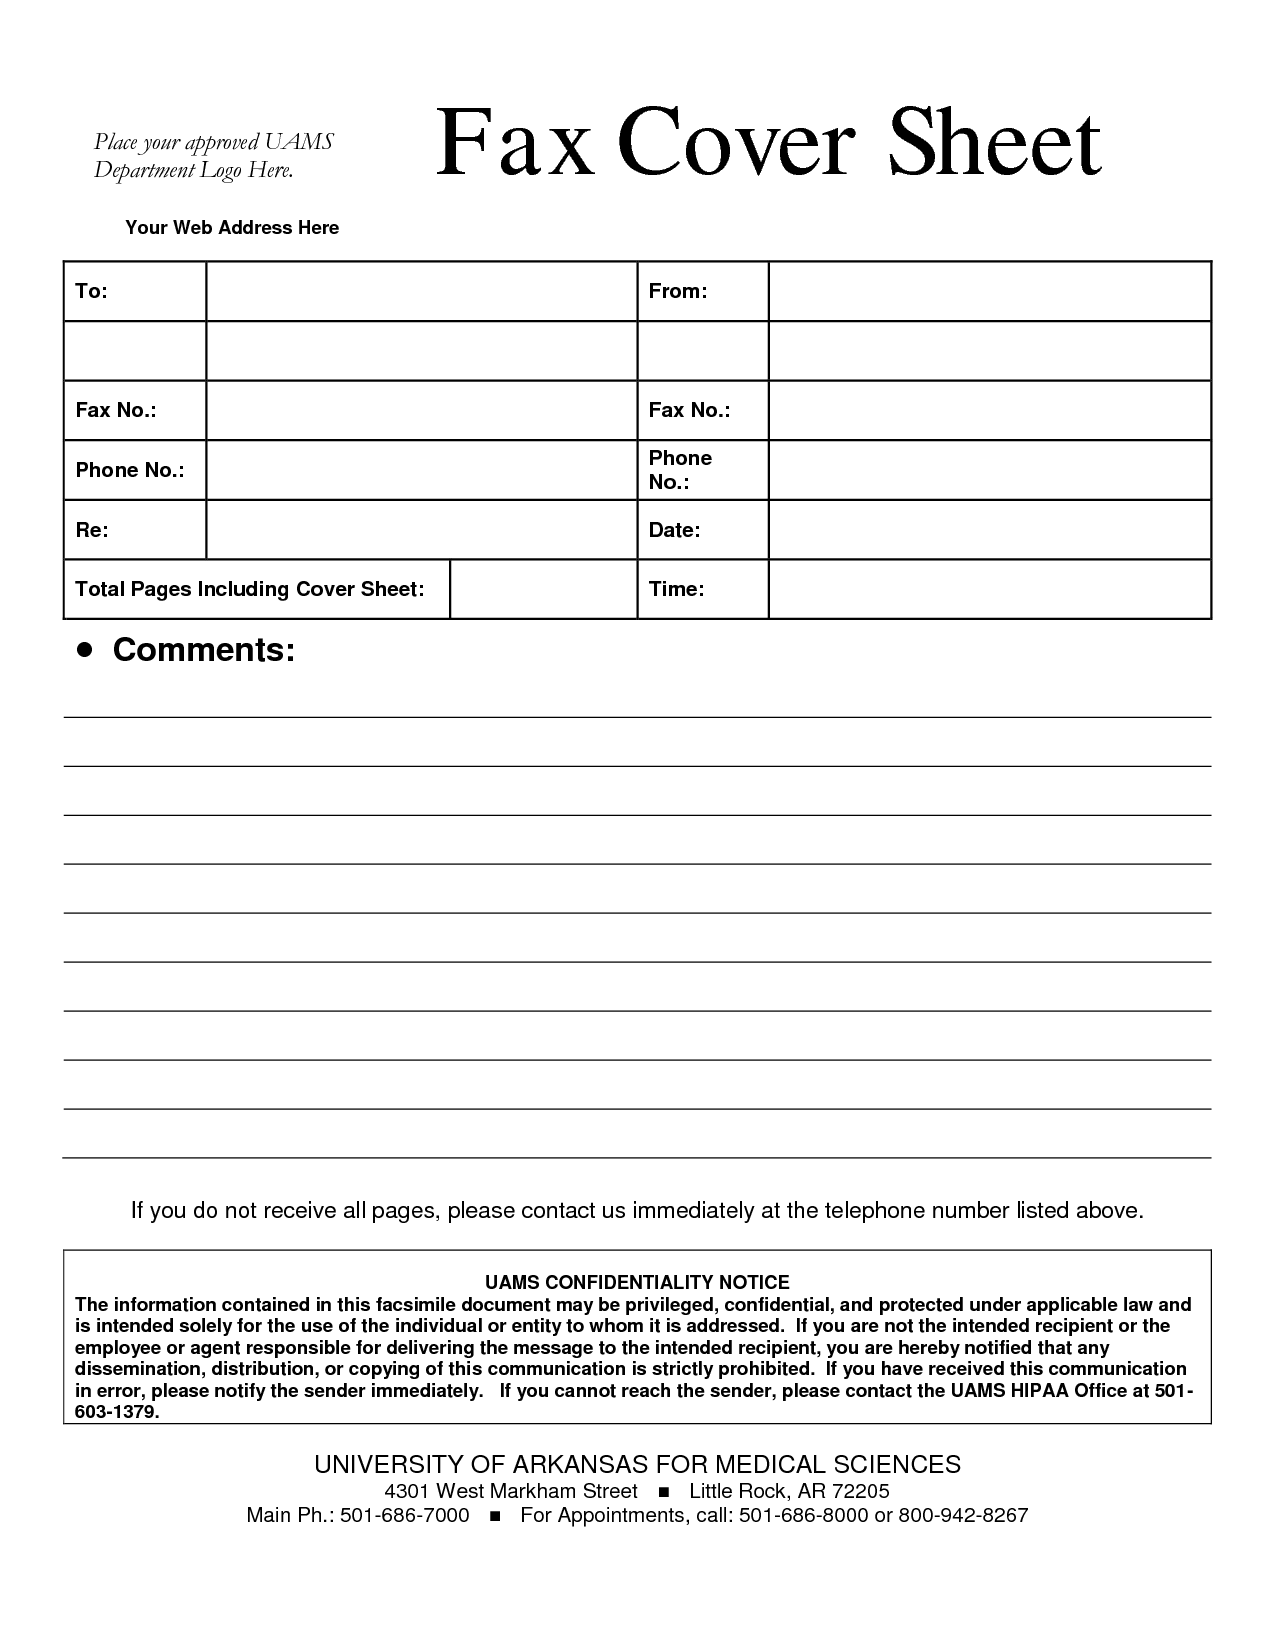 Doc.#9001165: Confidential Fax Cover Sheet – Fax Cover Sheet ...